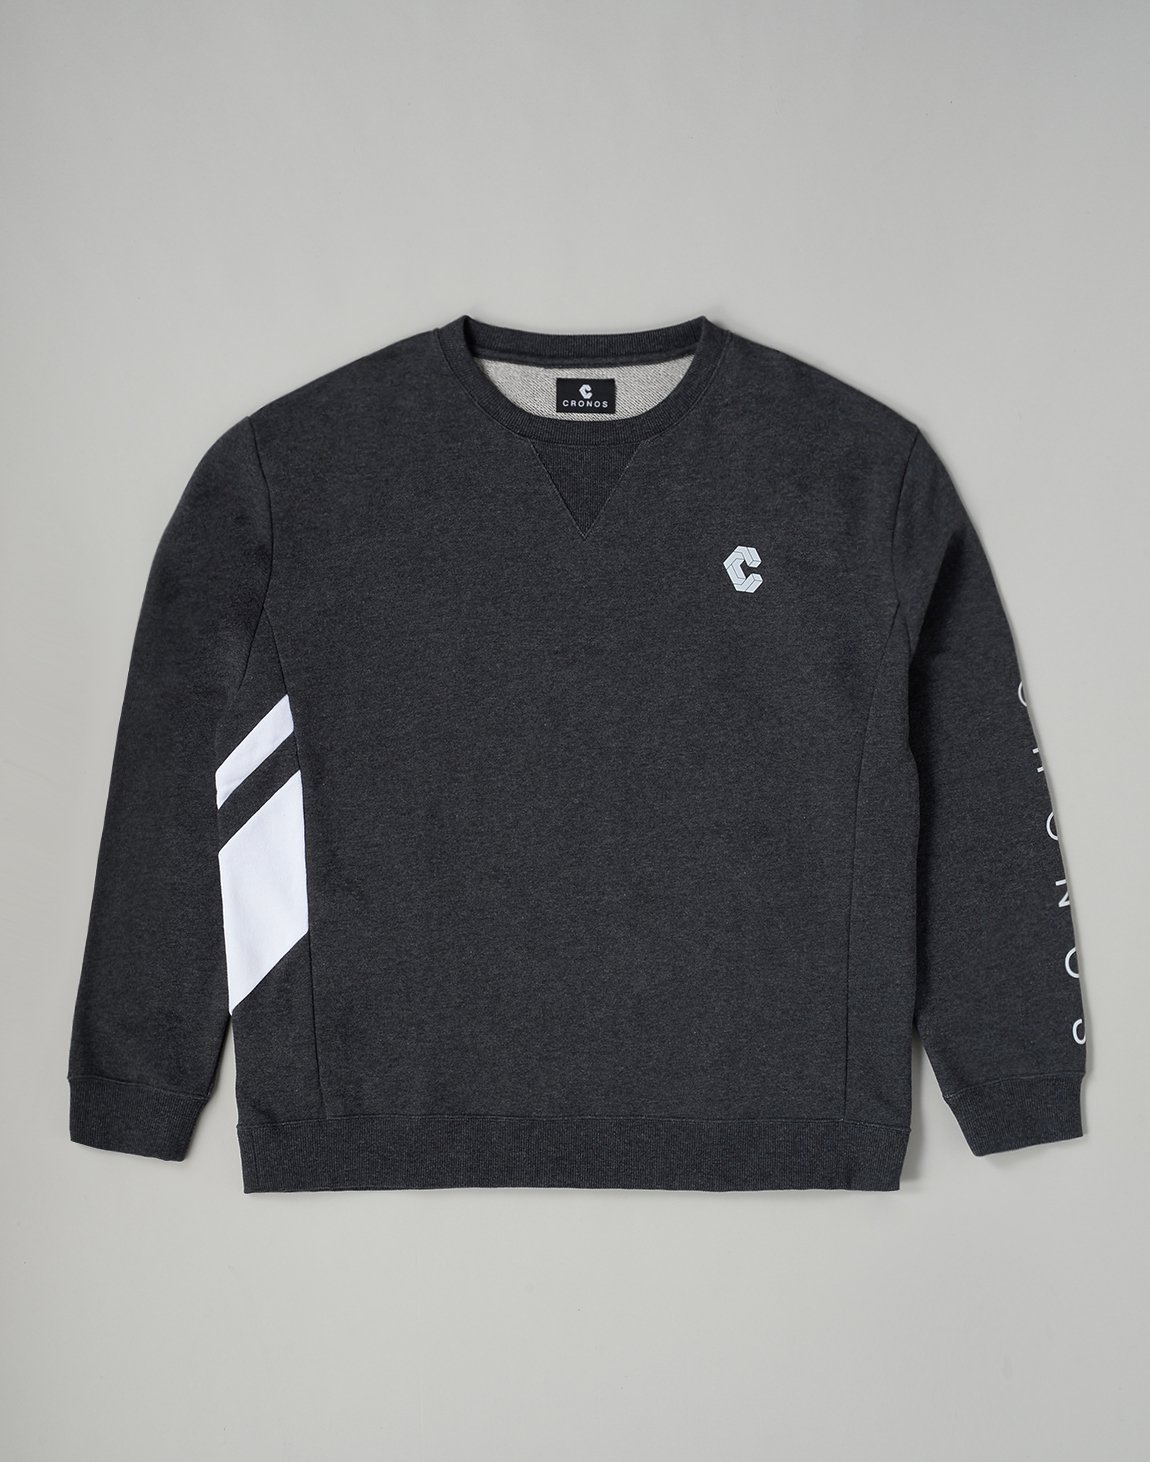 <img class='new_mark_img1' src='https://img.shop-pro.jp/img/new/icons1.gif' style='border:none;display:inline;margin:0px;padding:0px;width:auto;' />CRONOS SLANTED LINE SWEATSHIRT【C.GRAY】